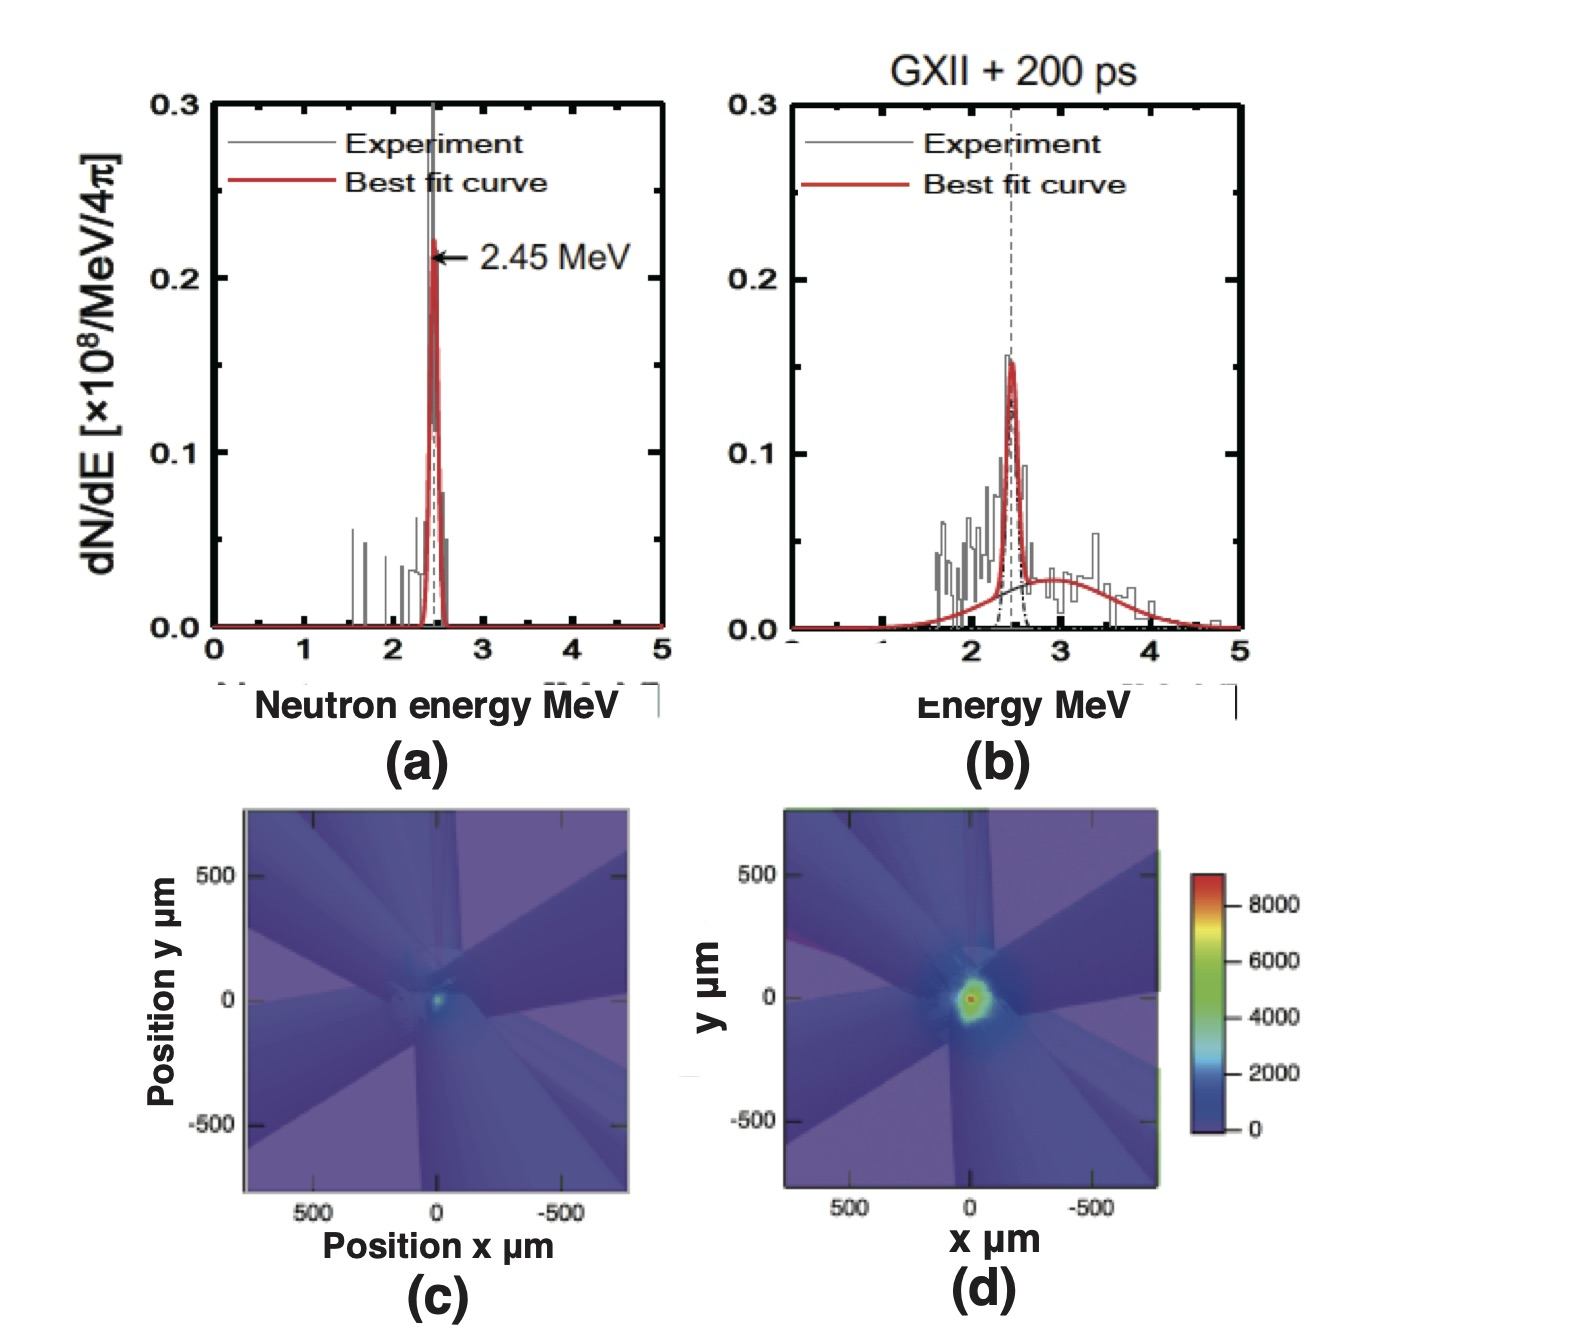 (a) Neutron TOF signals from MANDALA (Multichannel single-hit neutron scintillation detector array[ref2]) without LFEX: $N_y= 3.5\times10^6/4\pi$, and (b) signals with LFEX of 246 J: Total Ny = $9.8\times10^6/4\pi$; Red curves are the best fitted spectra. (c) X-ray core emission  from a pinhole camera corresponding to (a). (d) X-ray core emission corresponding to (b). Emission peak(d) is 4 times larger than (c).